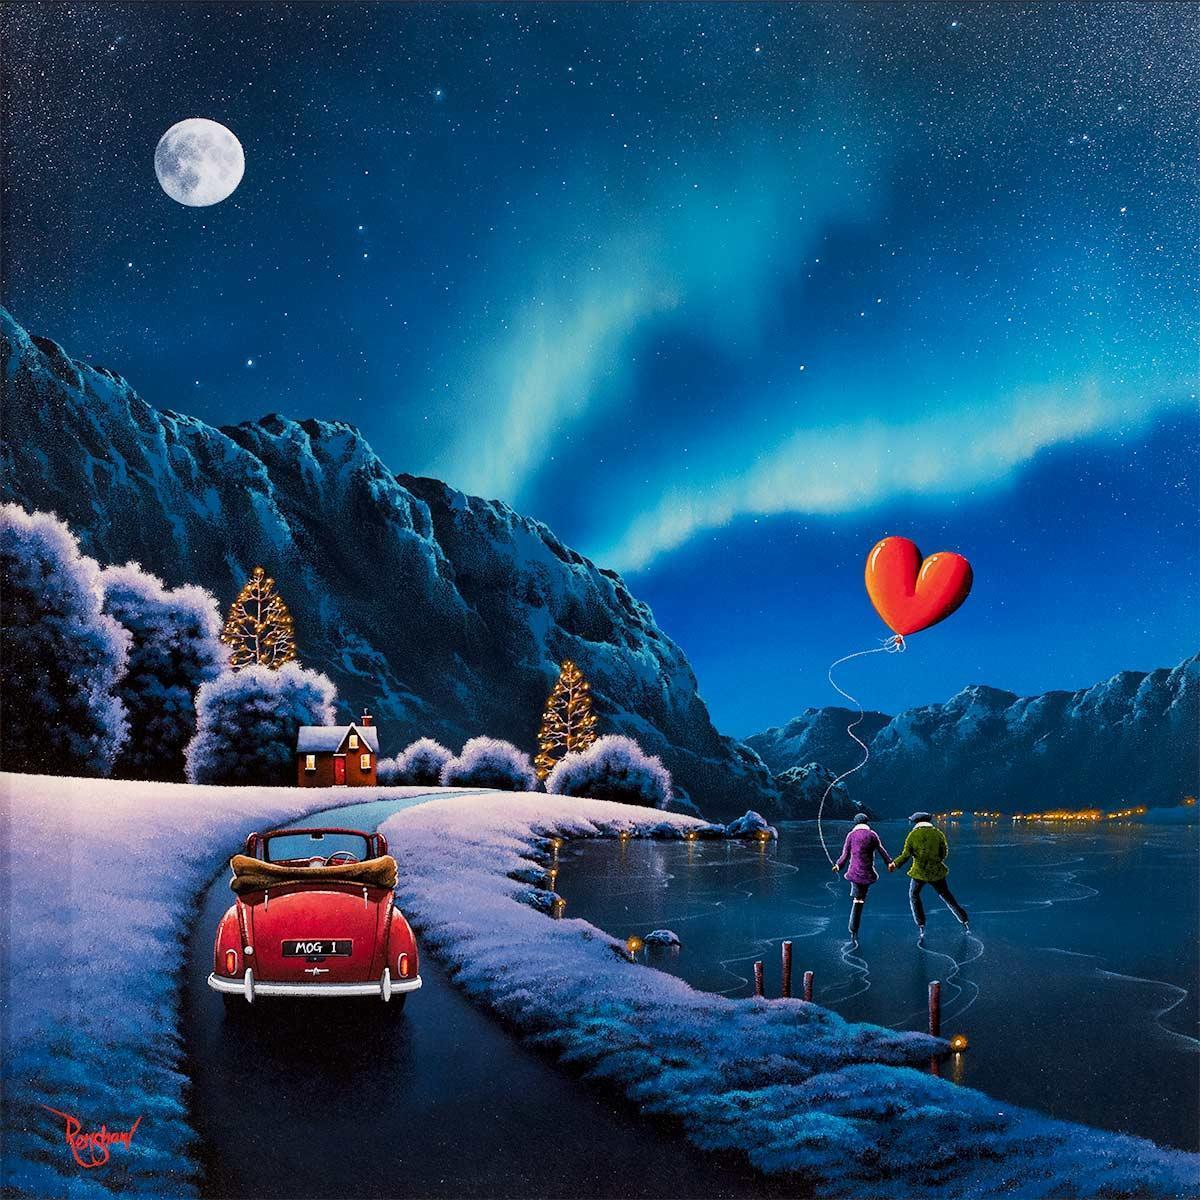 Moonlight Romance David Renshaw